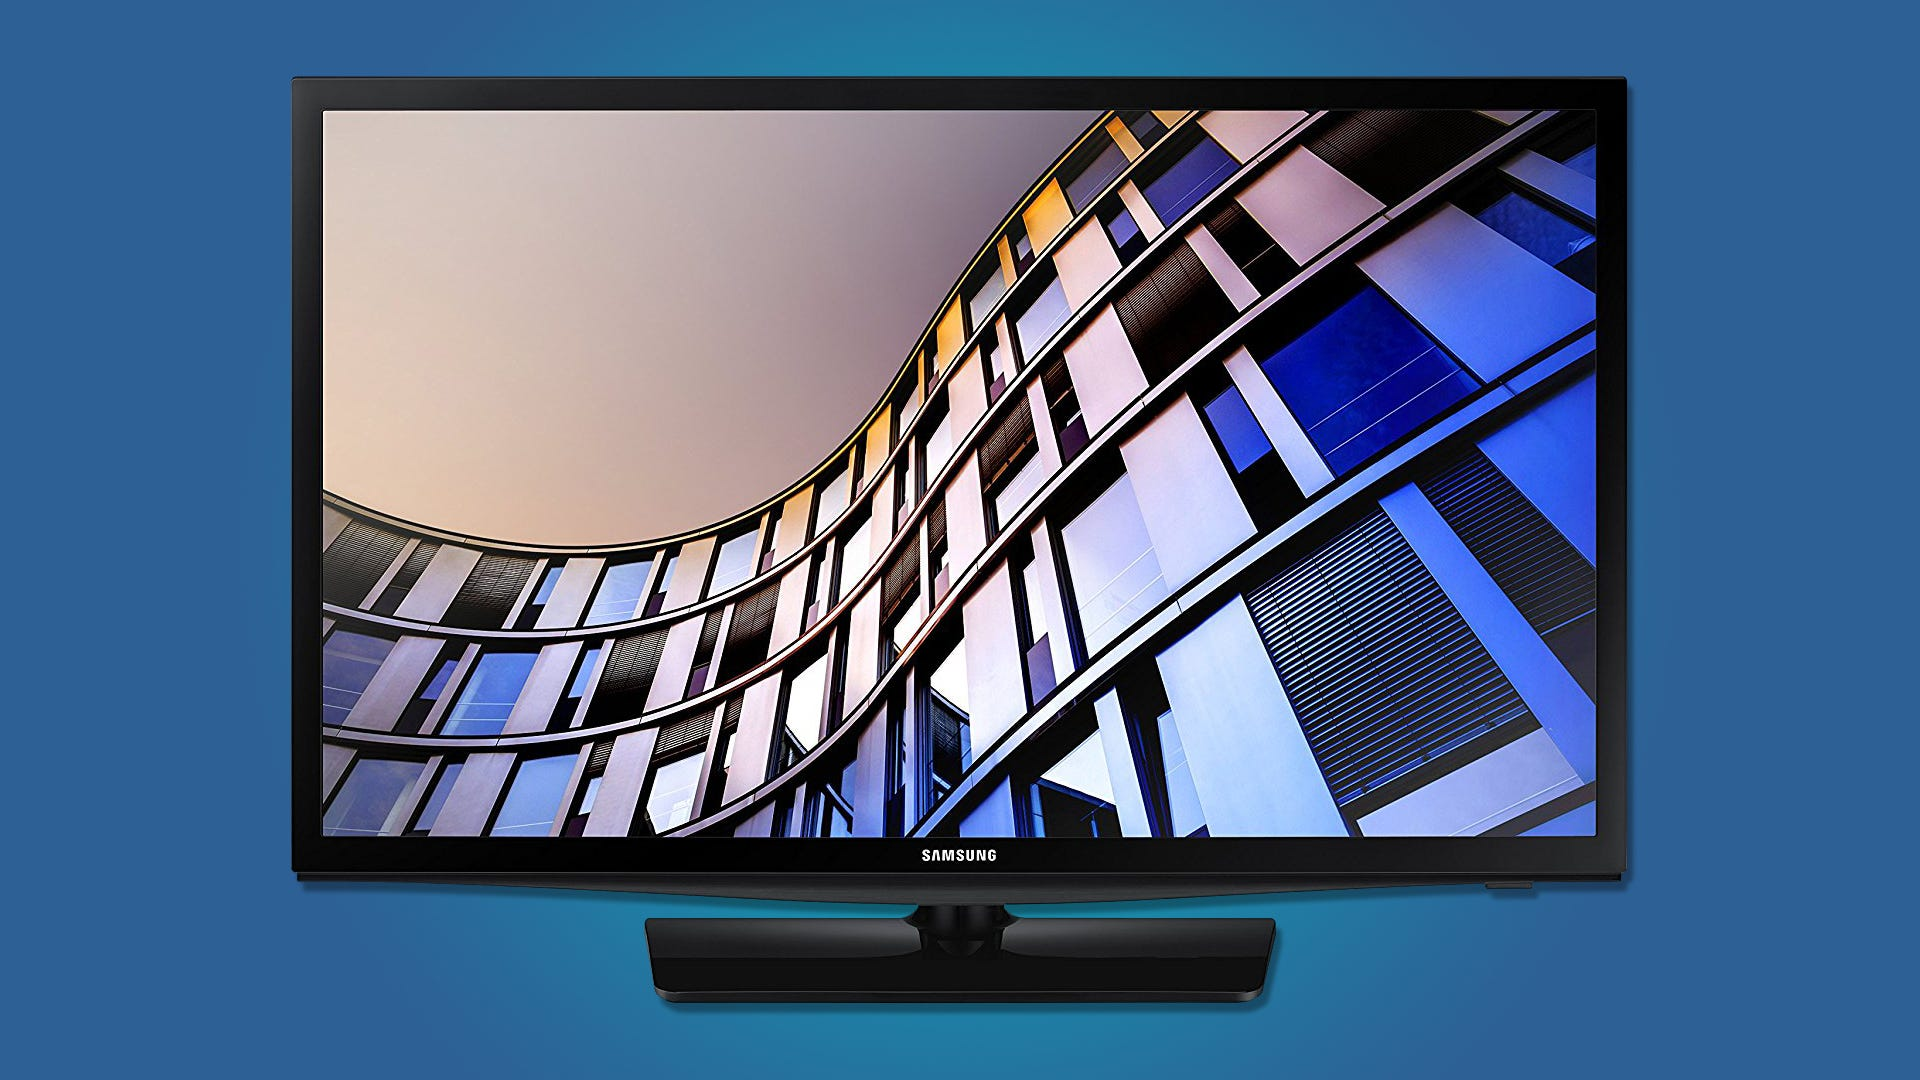 Best TV Picture For The Price ($138)